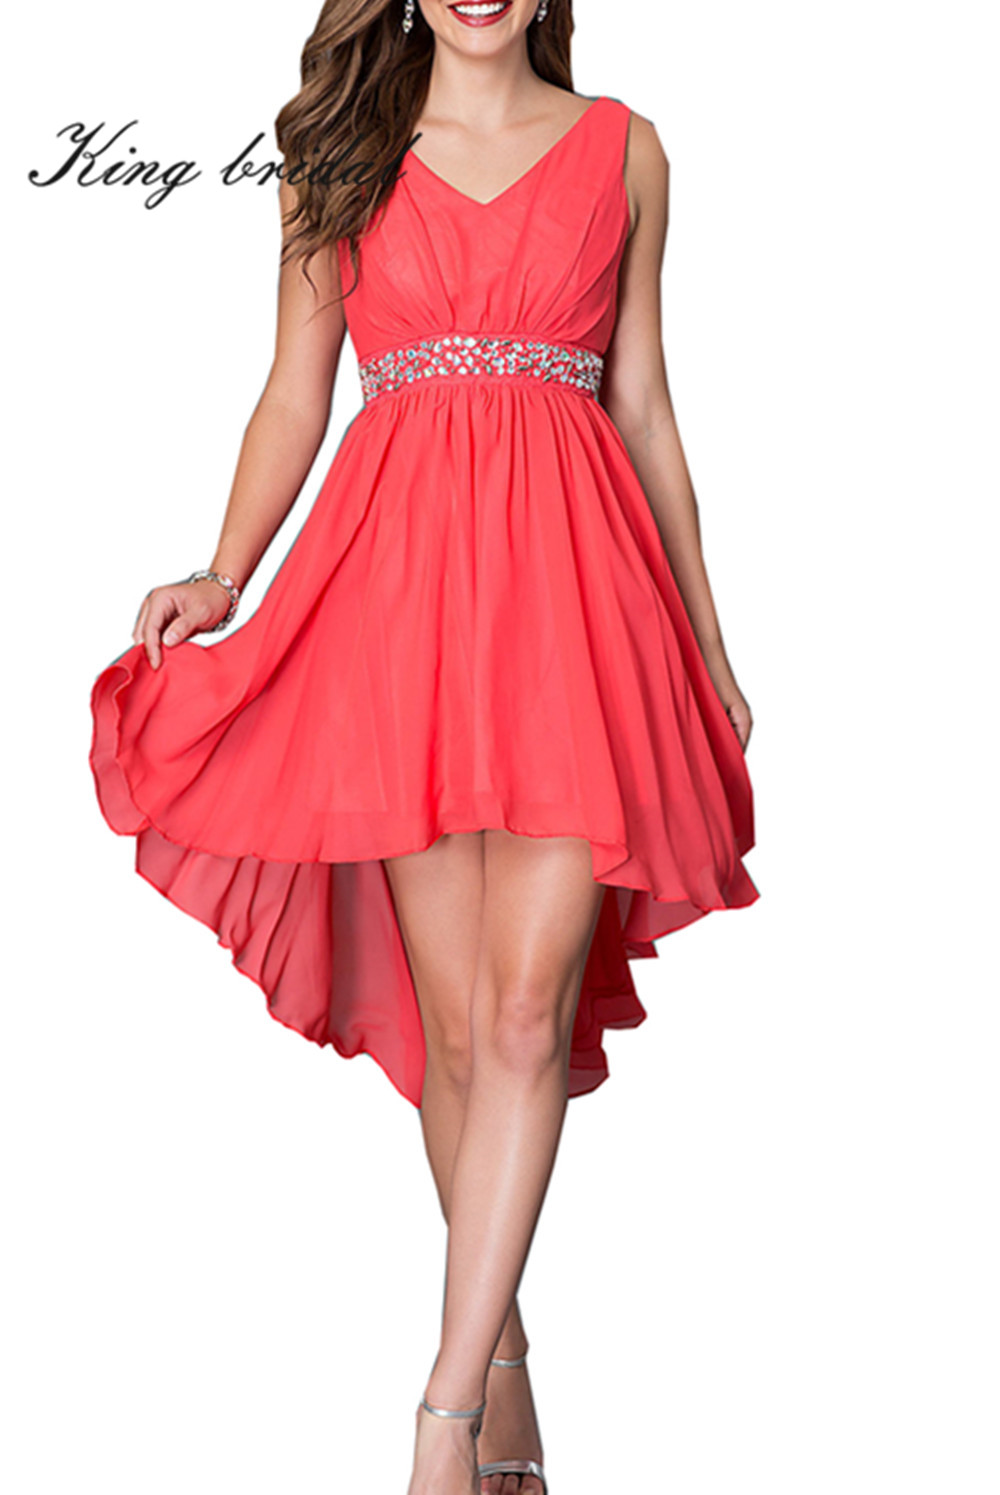 Compare Prices on Coral Prom Dresses- Online Shopping/Buy ...